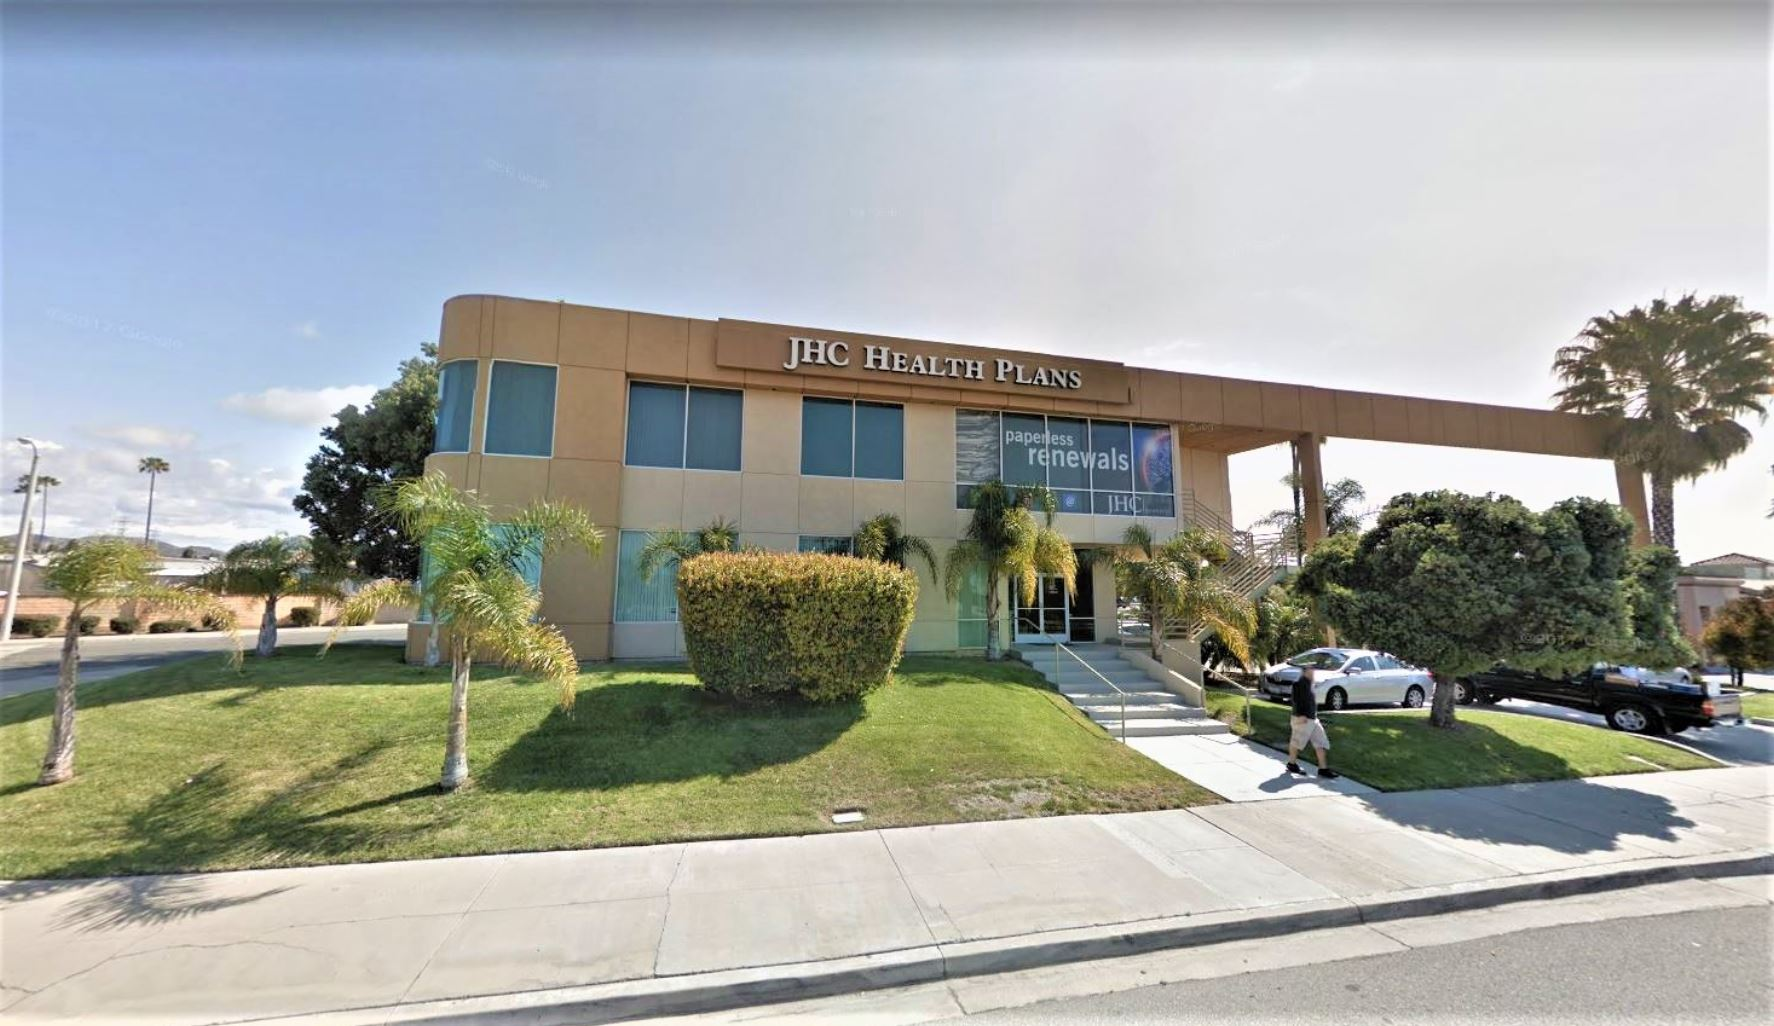 $1,200,000 Bridge Loan in Ventura, CA